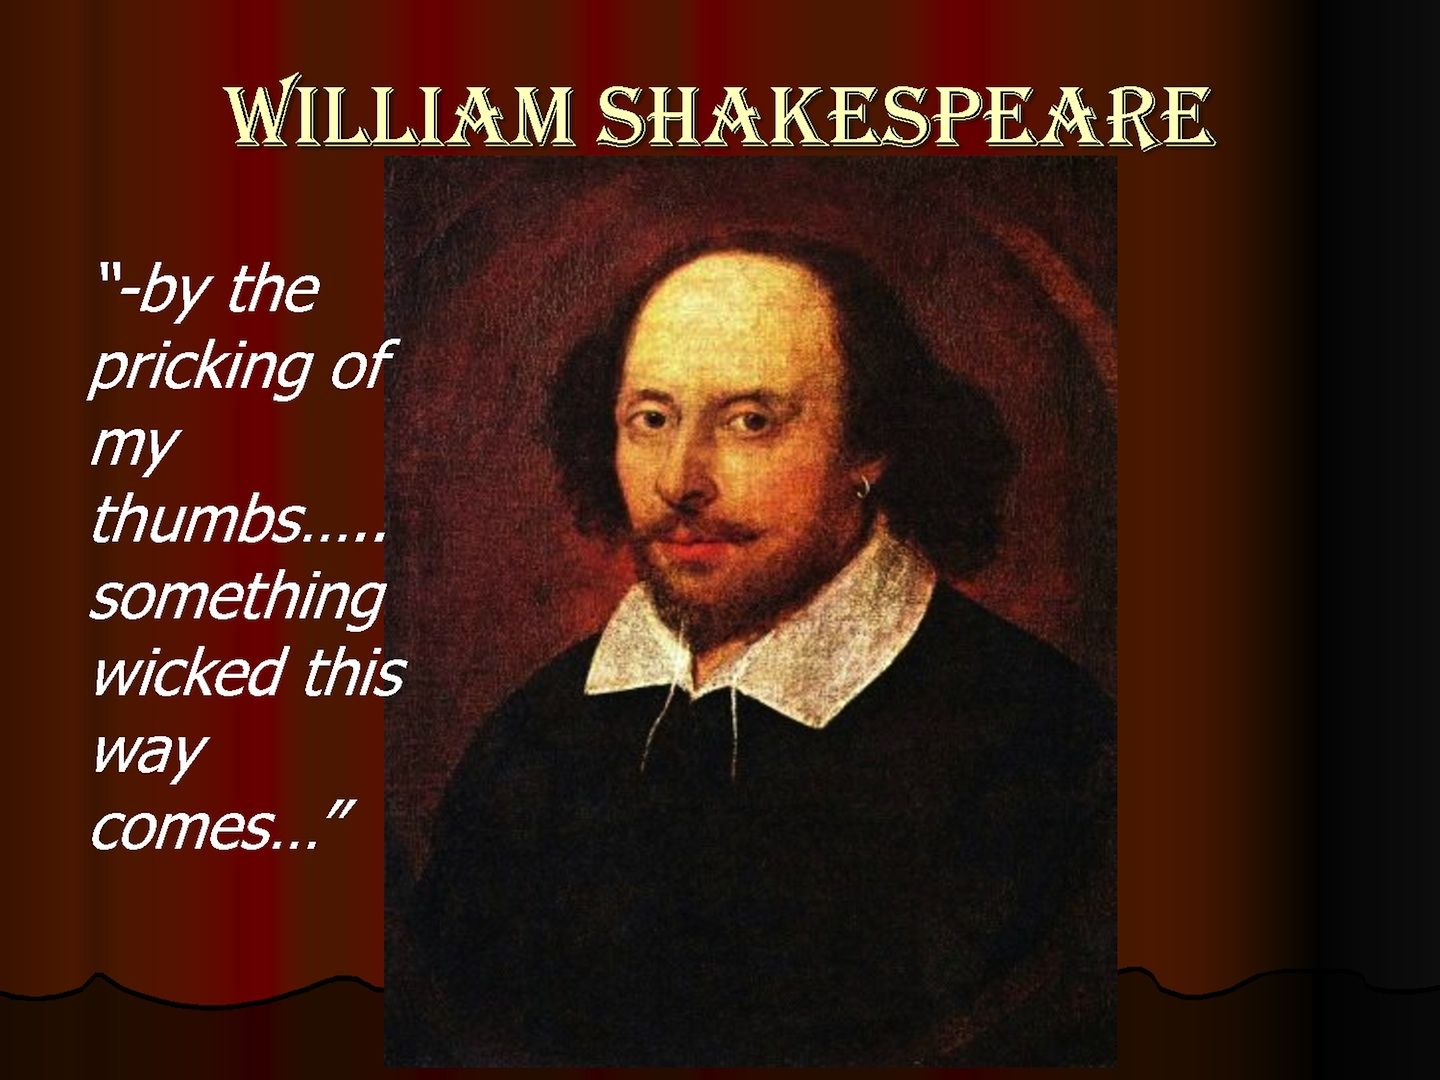 Image Result For William Shakespeare Image Hd